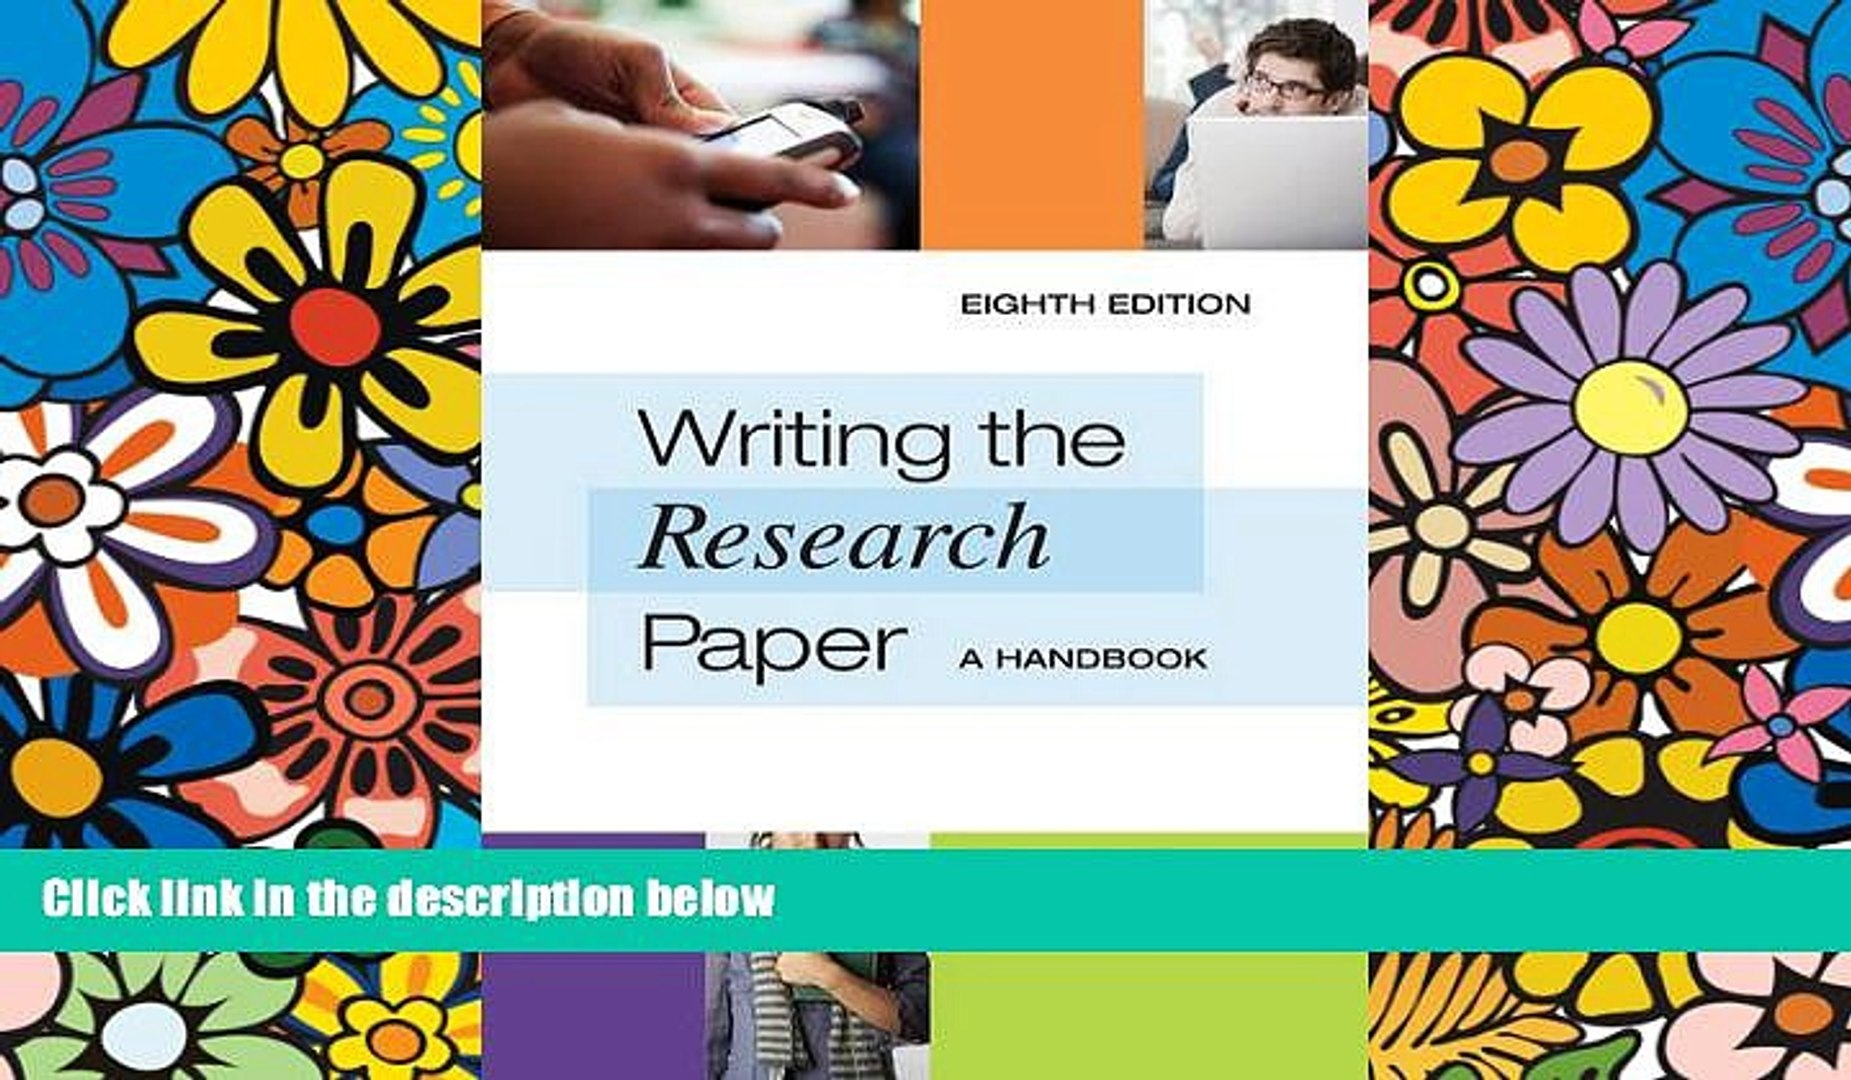 002 Writing The Research Paper Handbook X1080 Wonderful A 8th Edition Full